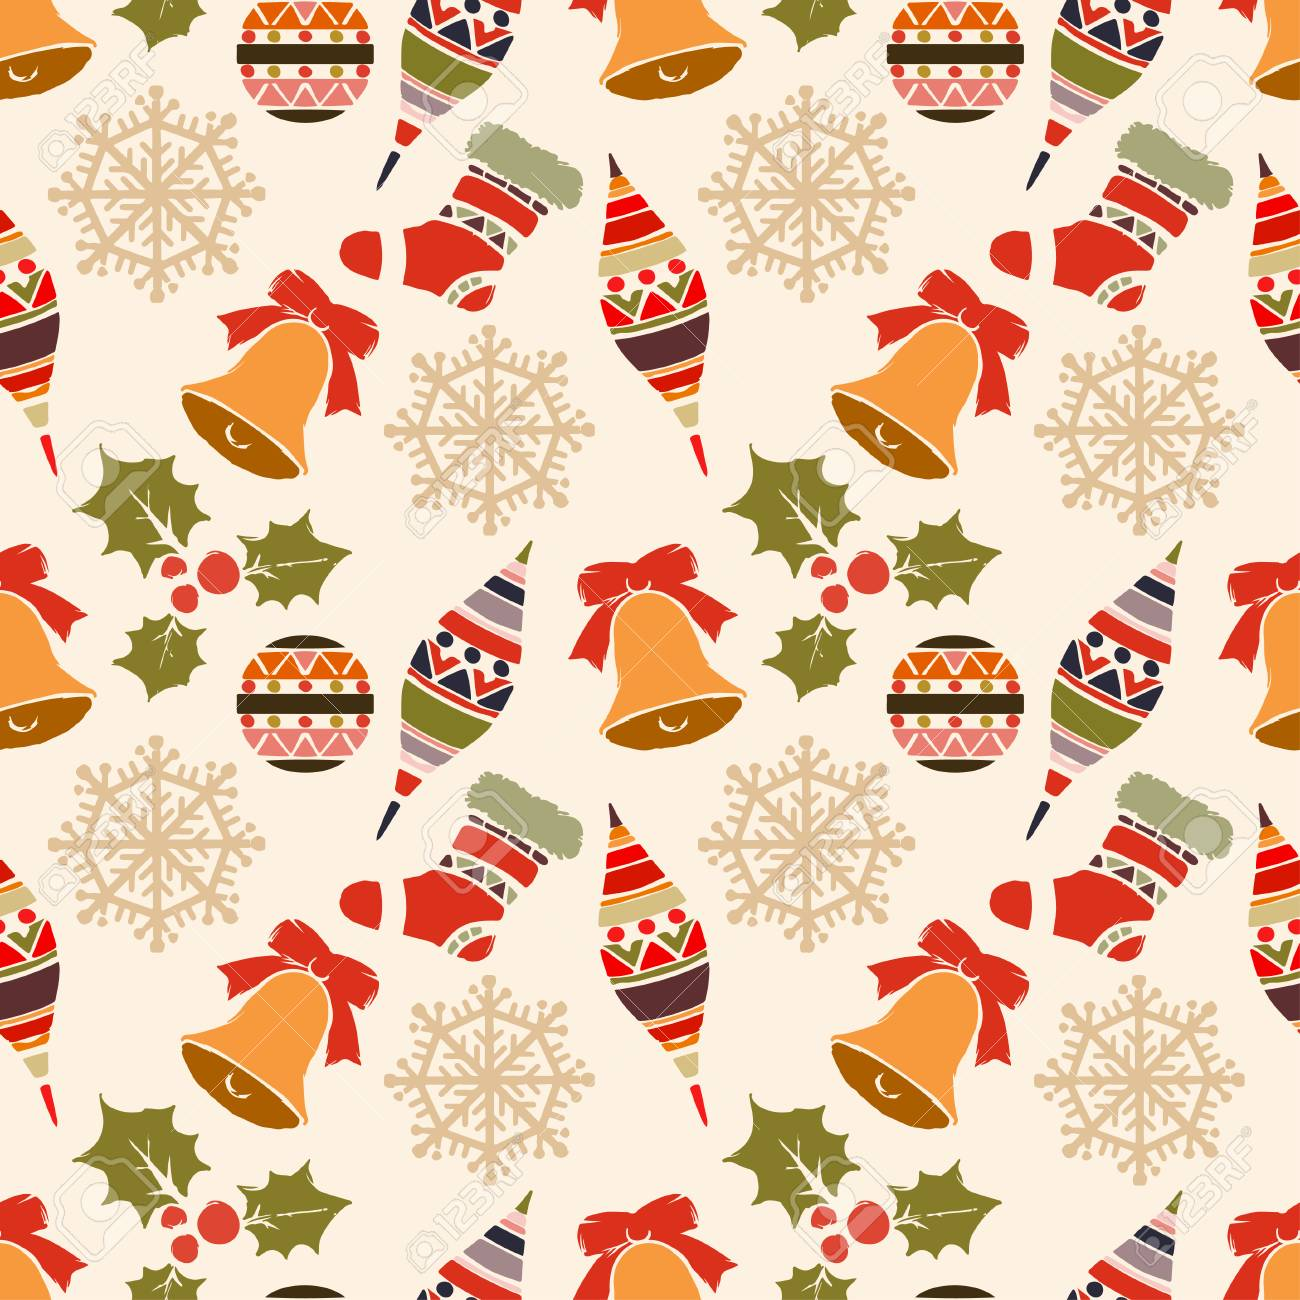 Holidays Vintage Christmas Seamless Pattern Abstract Silhouette Royalty Free Cliparts Vectors And Stock Illustration Image 96239584